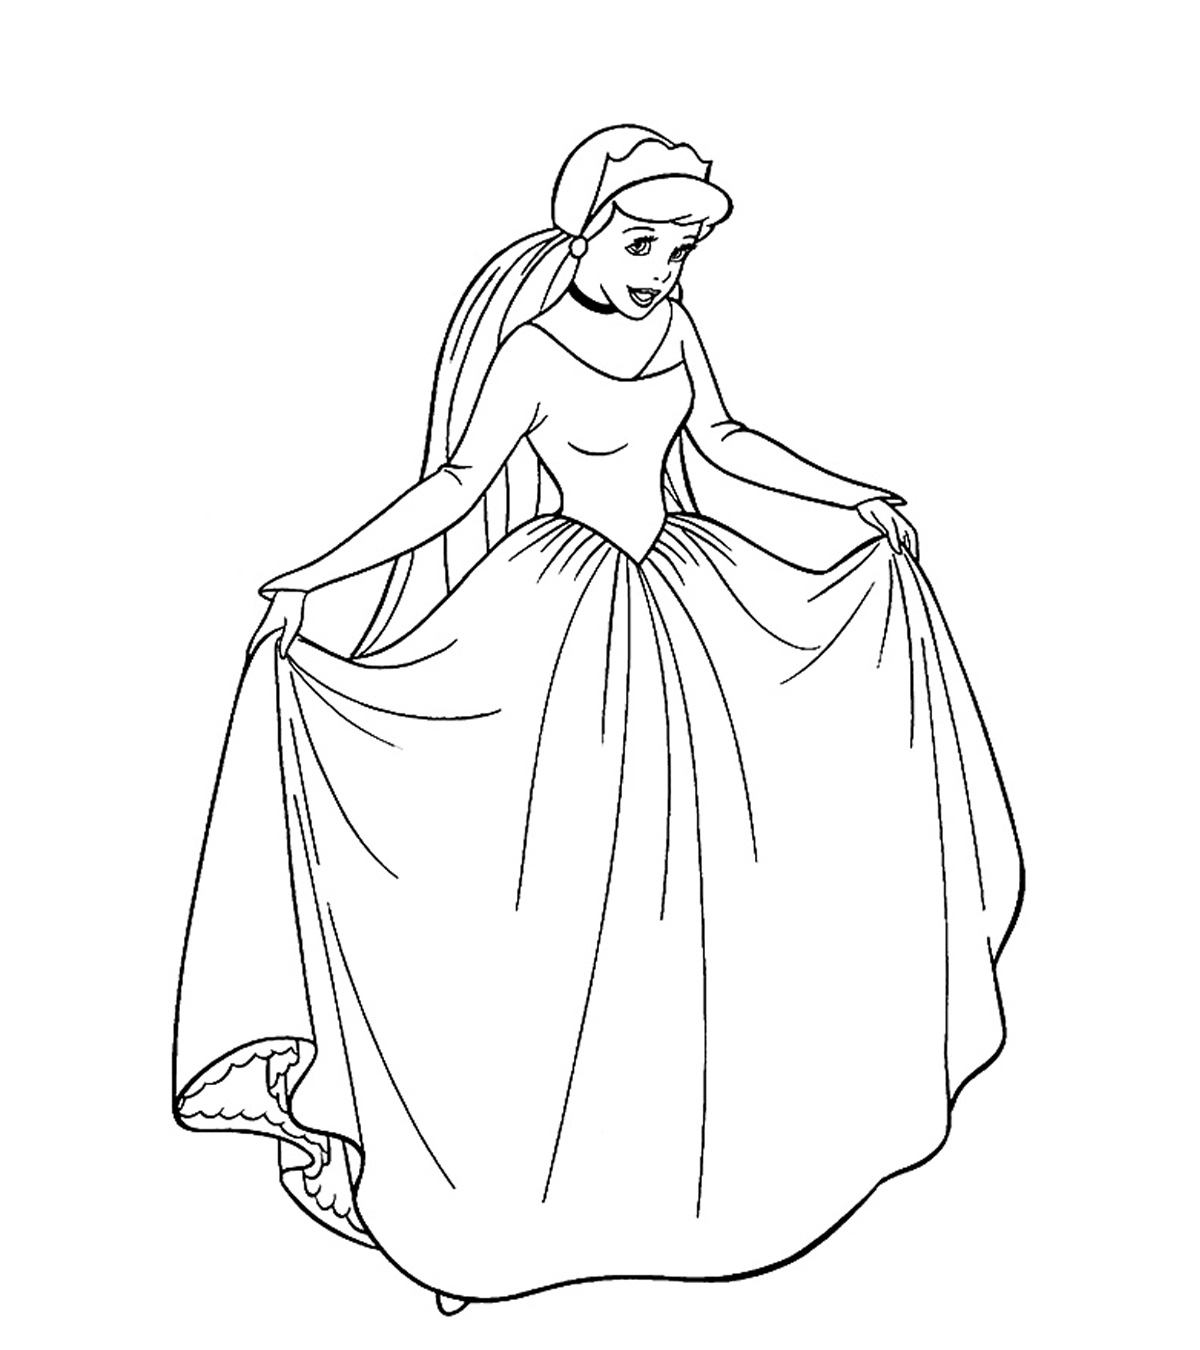 Top 10 Free Printable Princess Coloring Pages Online